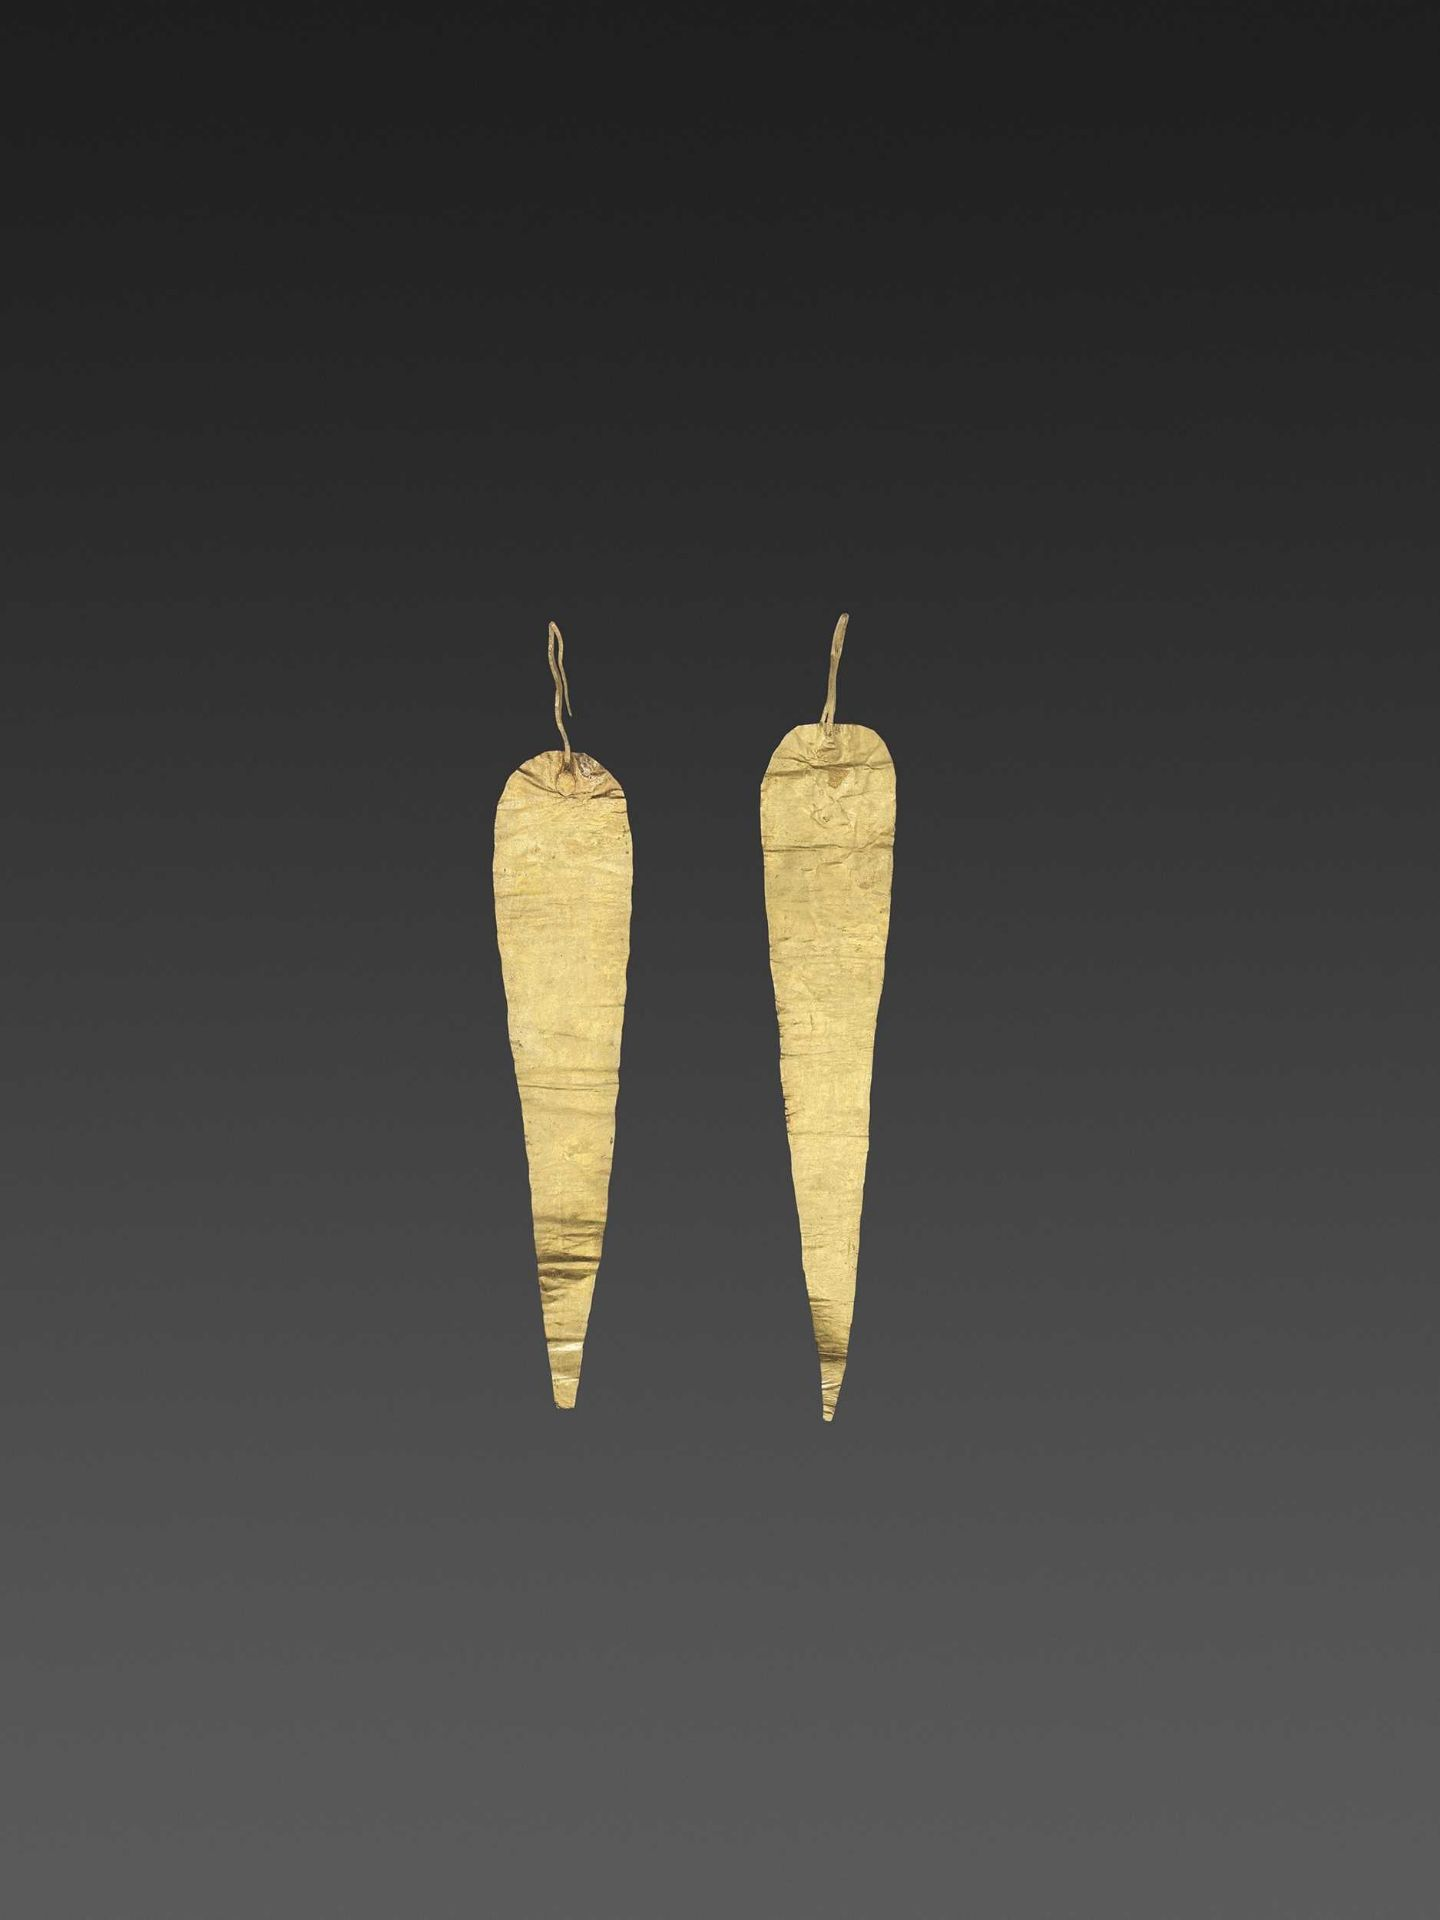 A PAIR OF BACTRIAN GOLD HAIR ORNAMMENTS